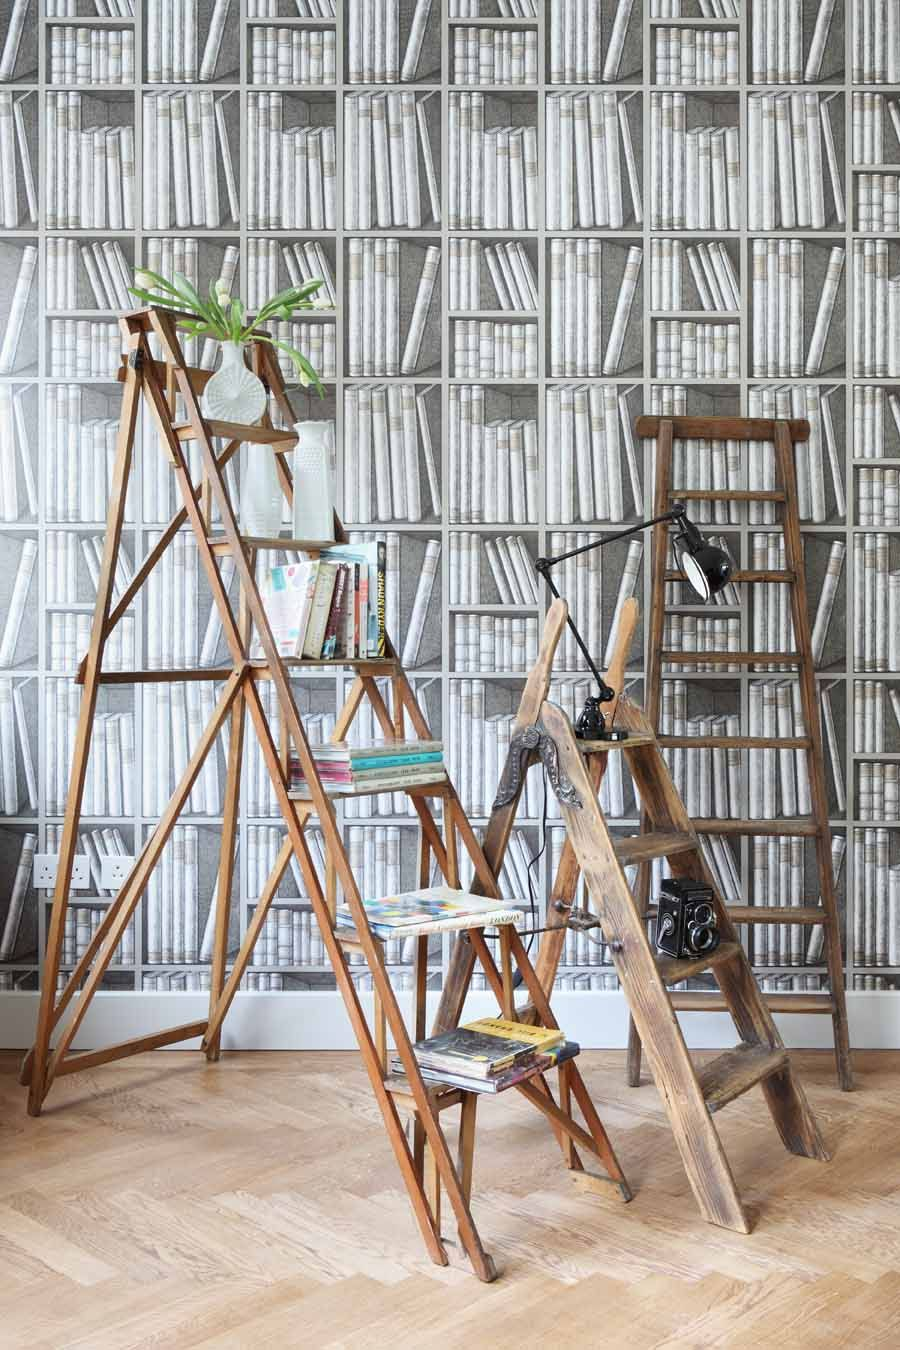 Cole & Son Ex Libris wall paperprovides a focal feature backdrop for vintage ladders, which offer imaginative shelves for displaying vintage finds.